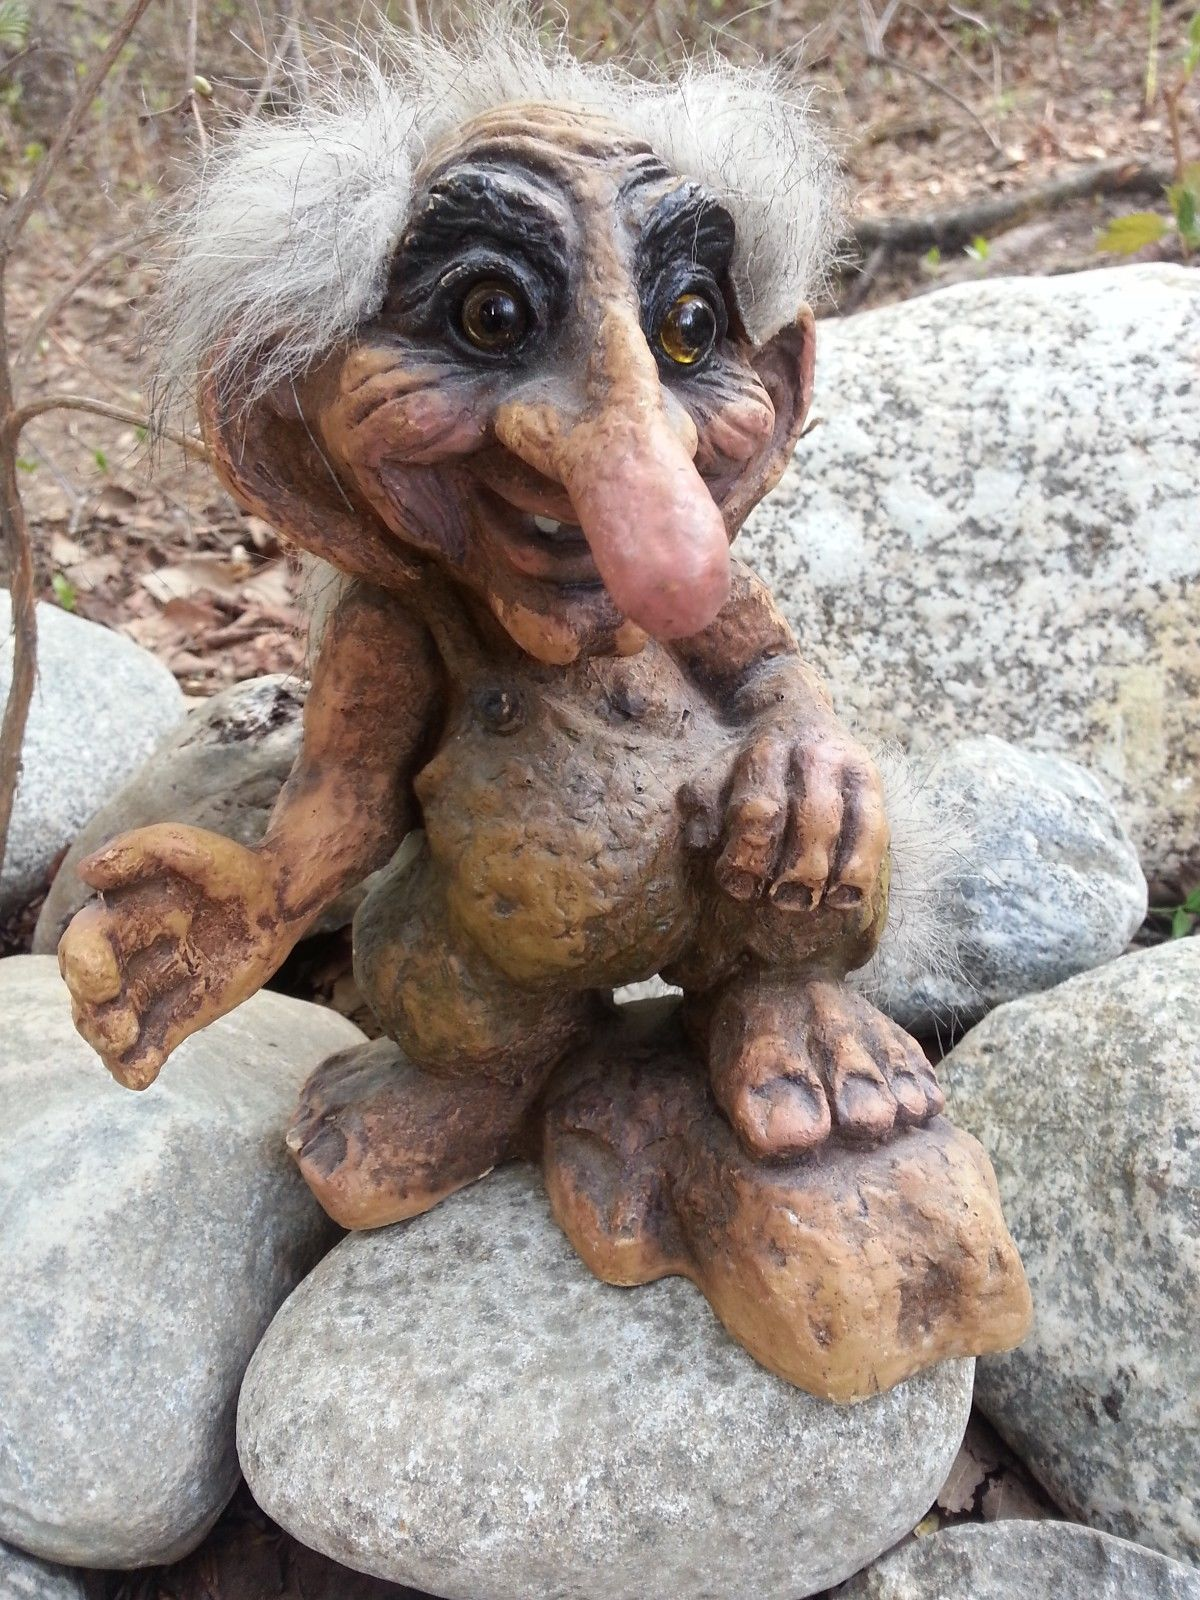 Norwegian Nyform Trolls Old Man With Foot On Rock Very Long Nose Big Ears Vntg Ebay Duendes Gnomos Noruega